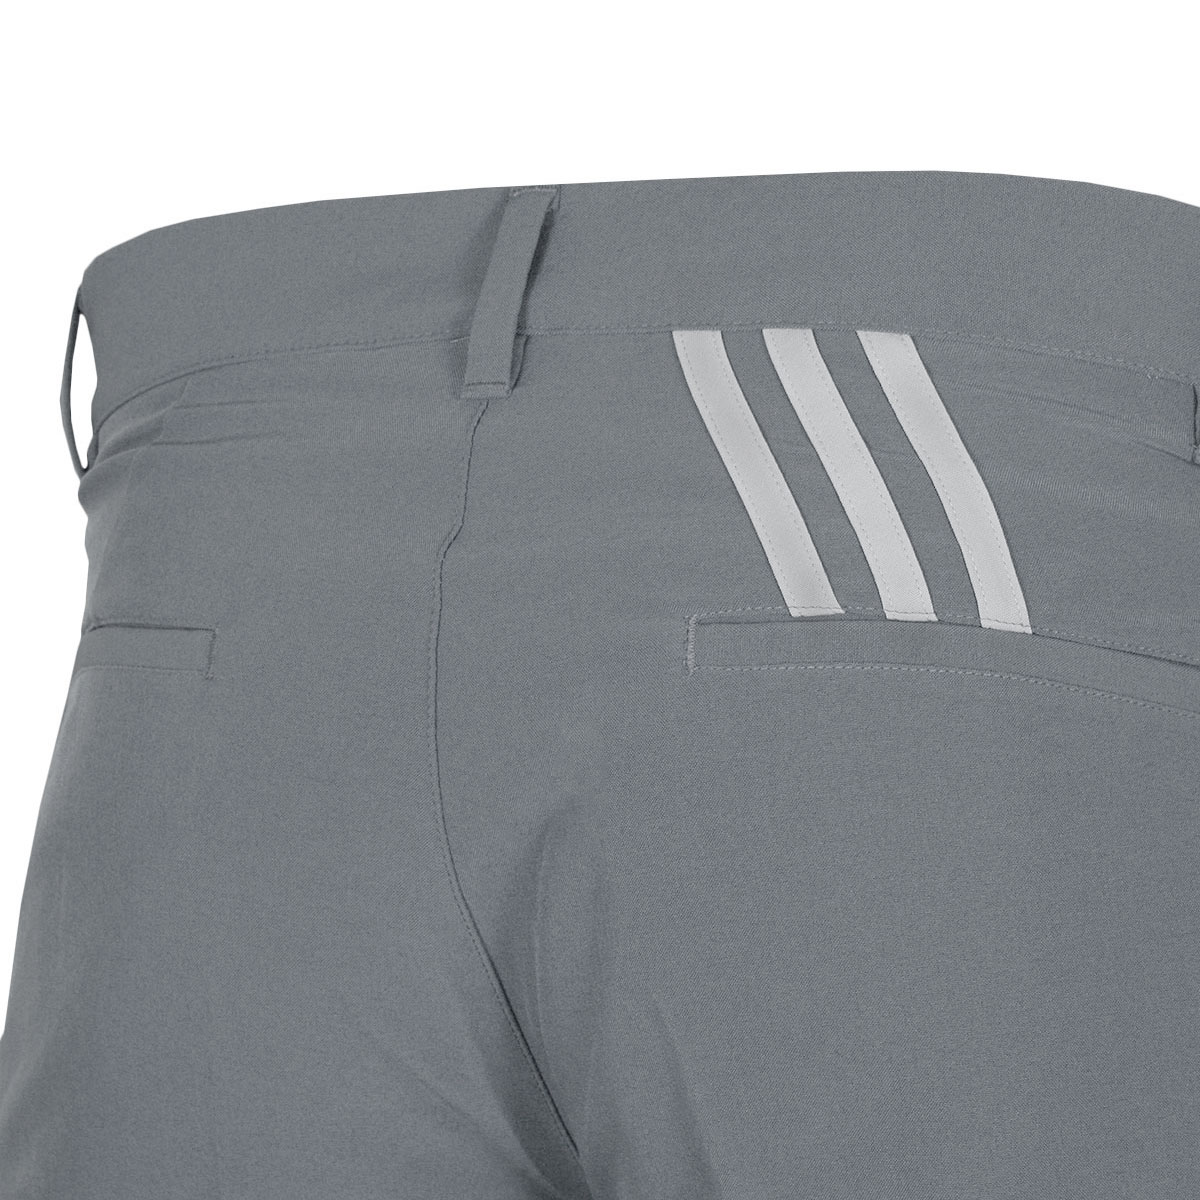 adidas-Golf-Mens-Ultimate-3-Stripes-Stretch-Pant-Trousers-44-OFF-RRP Indexbild 25